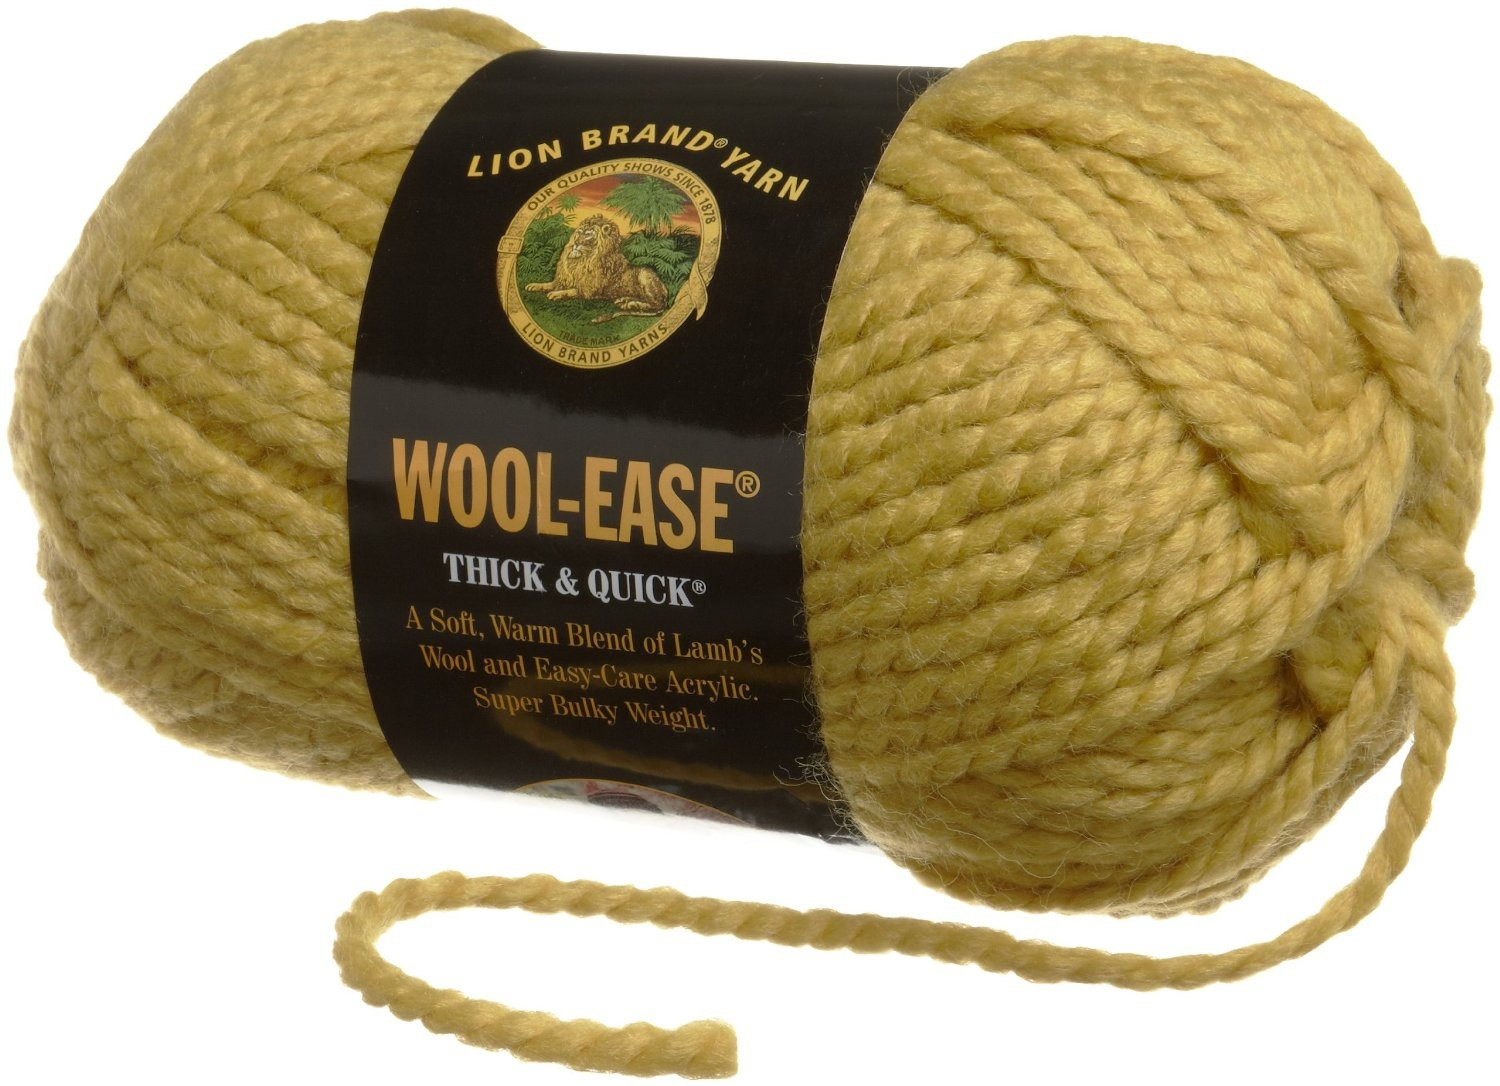 Lion Brand Yarn Thick and Quick Fresh Lion Brand Yarn 640 136f Wool Ease Thick and Quick Yarn Of Luxury 44 Models Lion Brand Yarn Thick and Quick